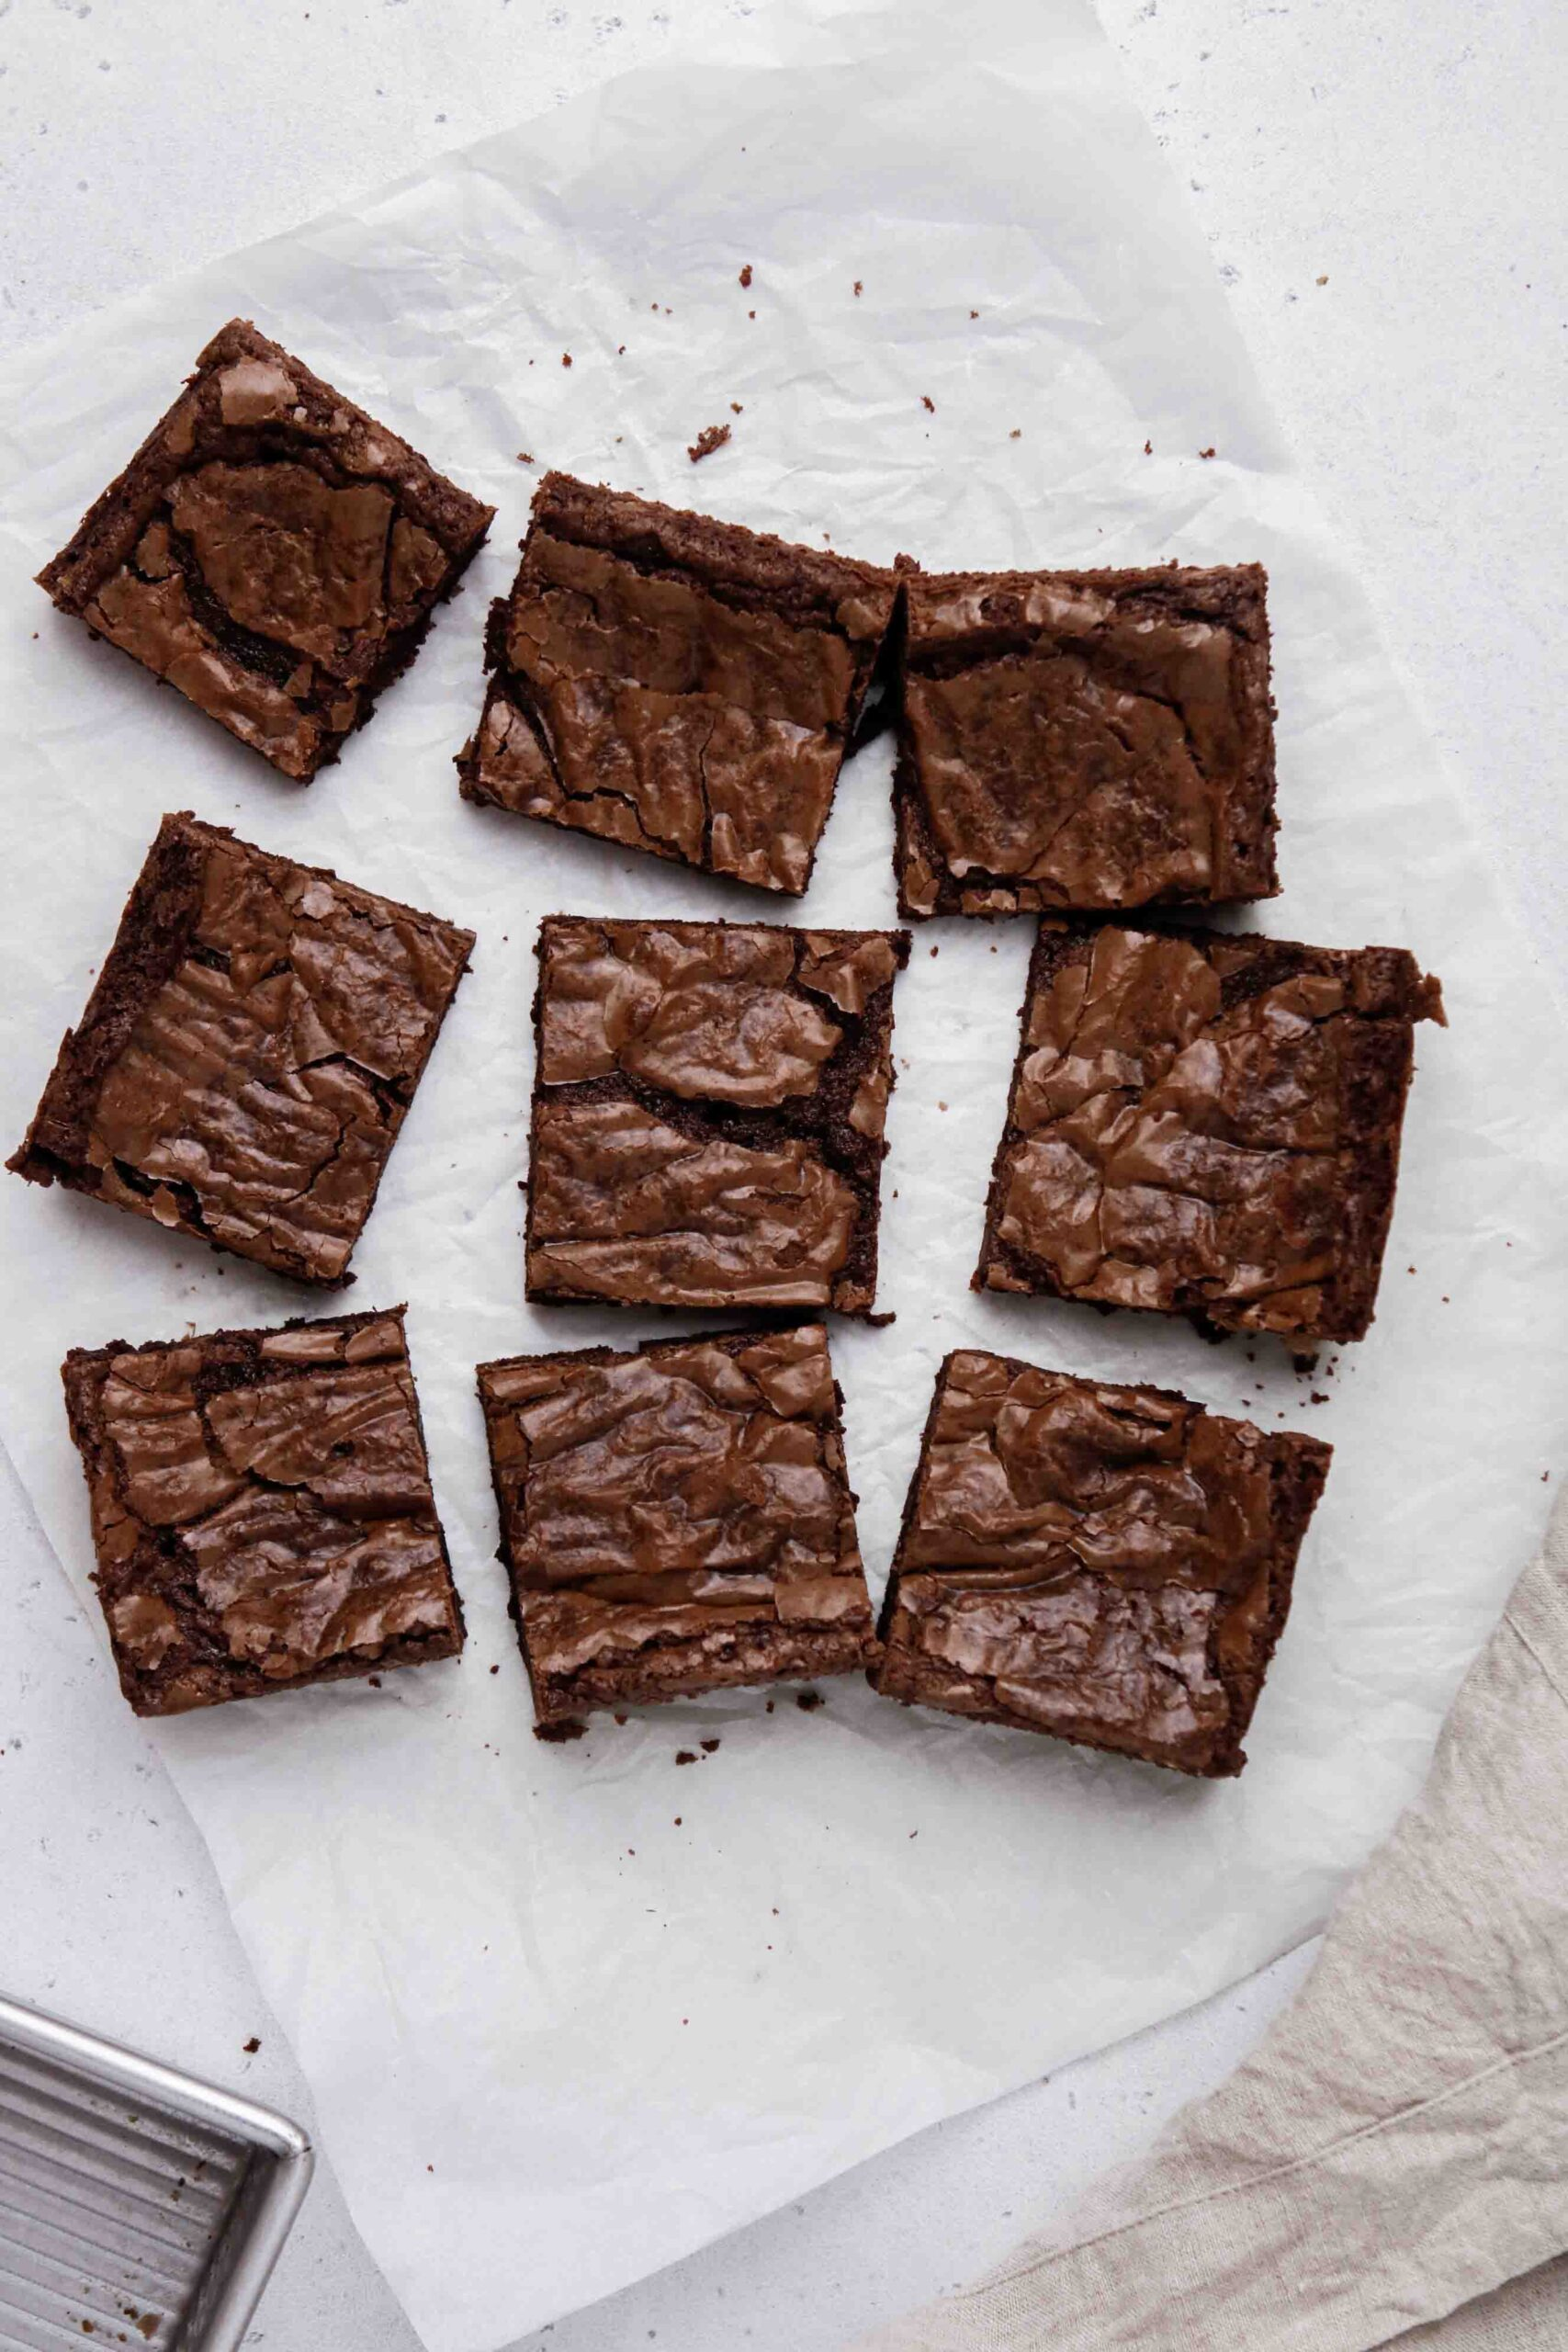 How to cut brownies